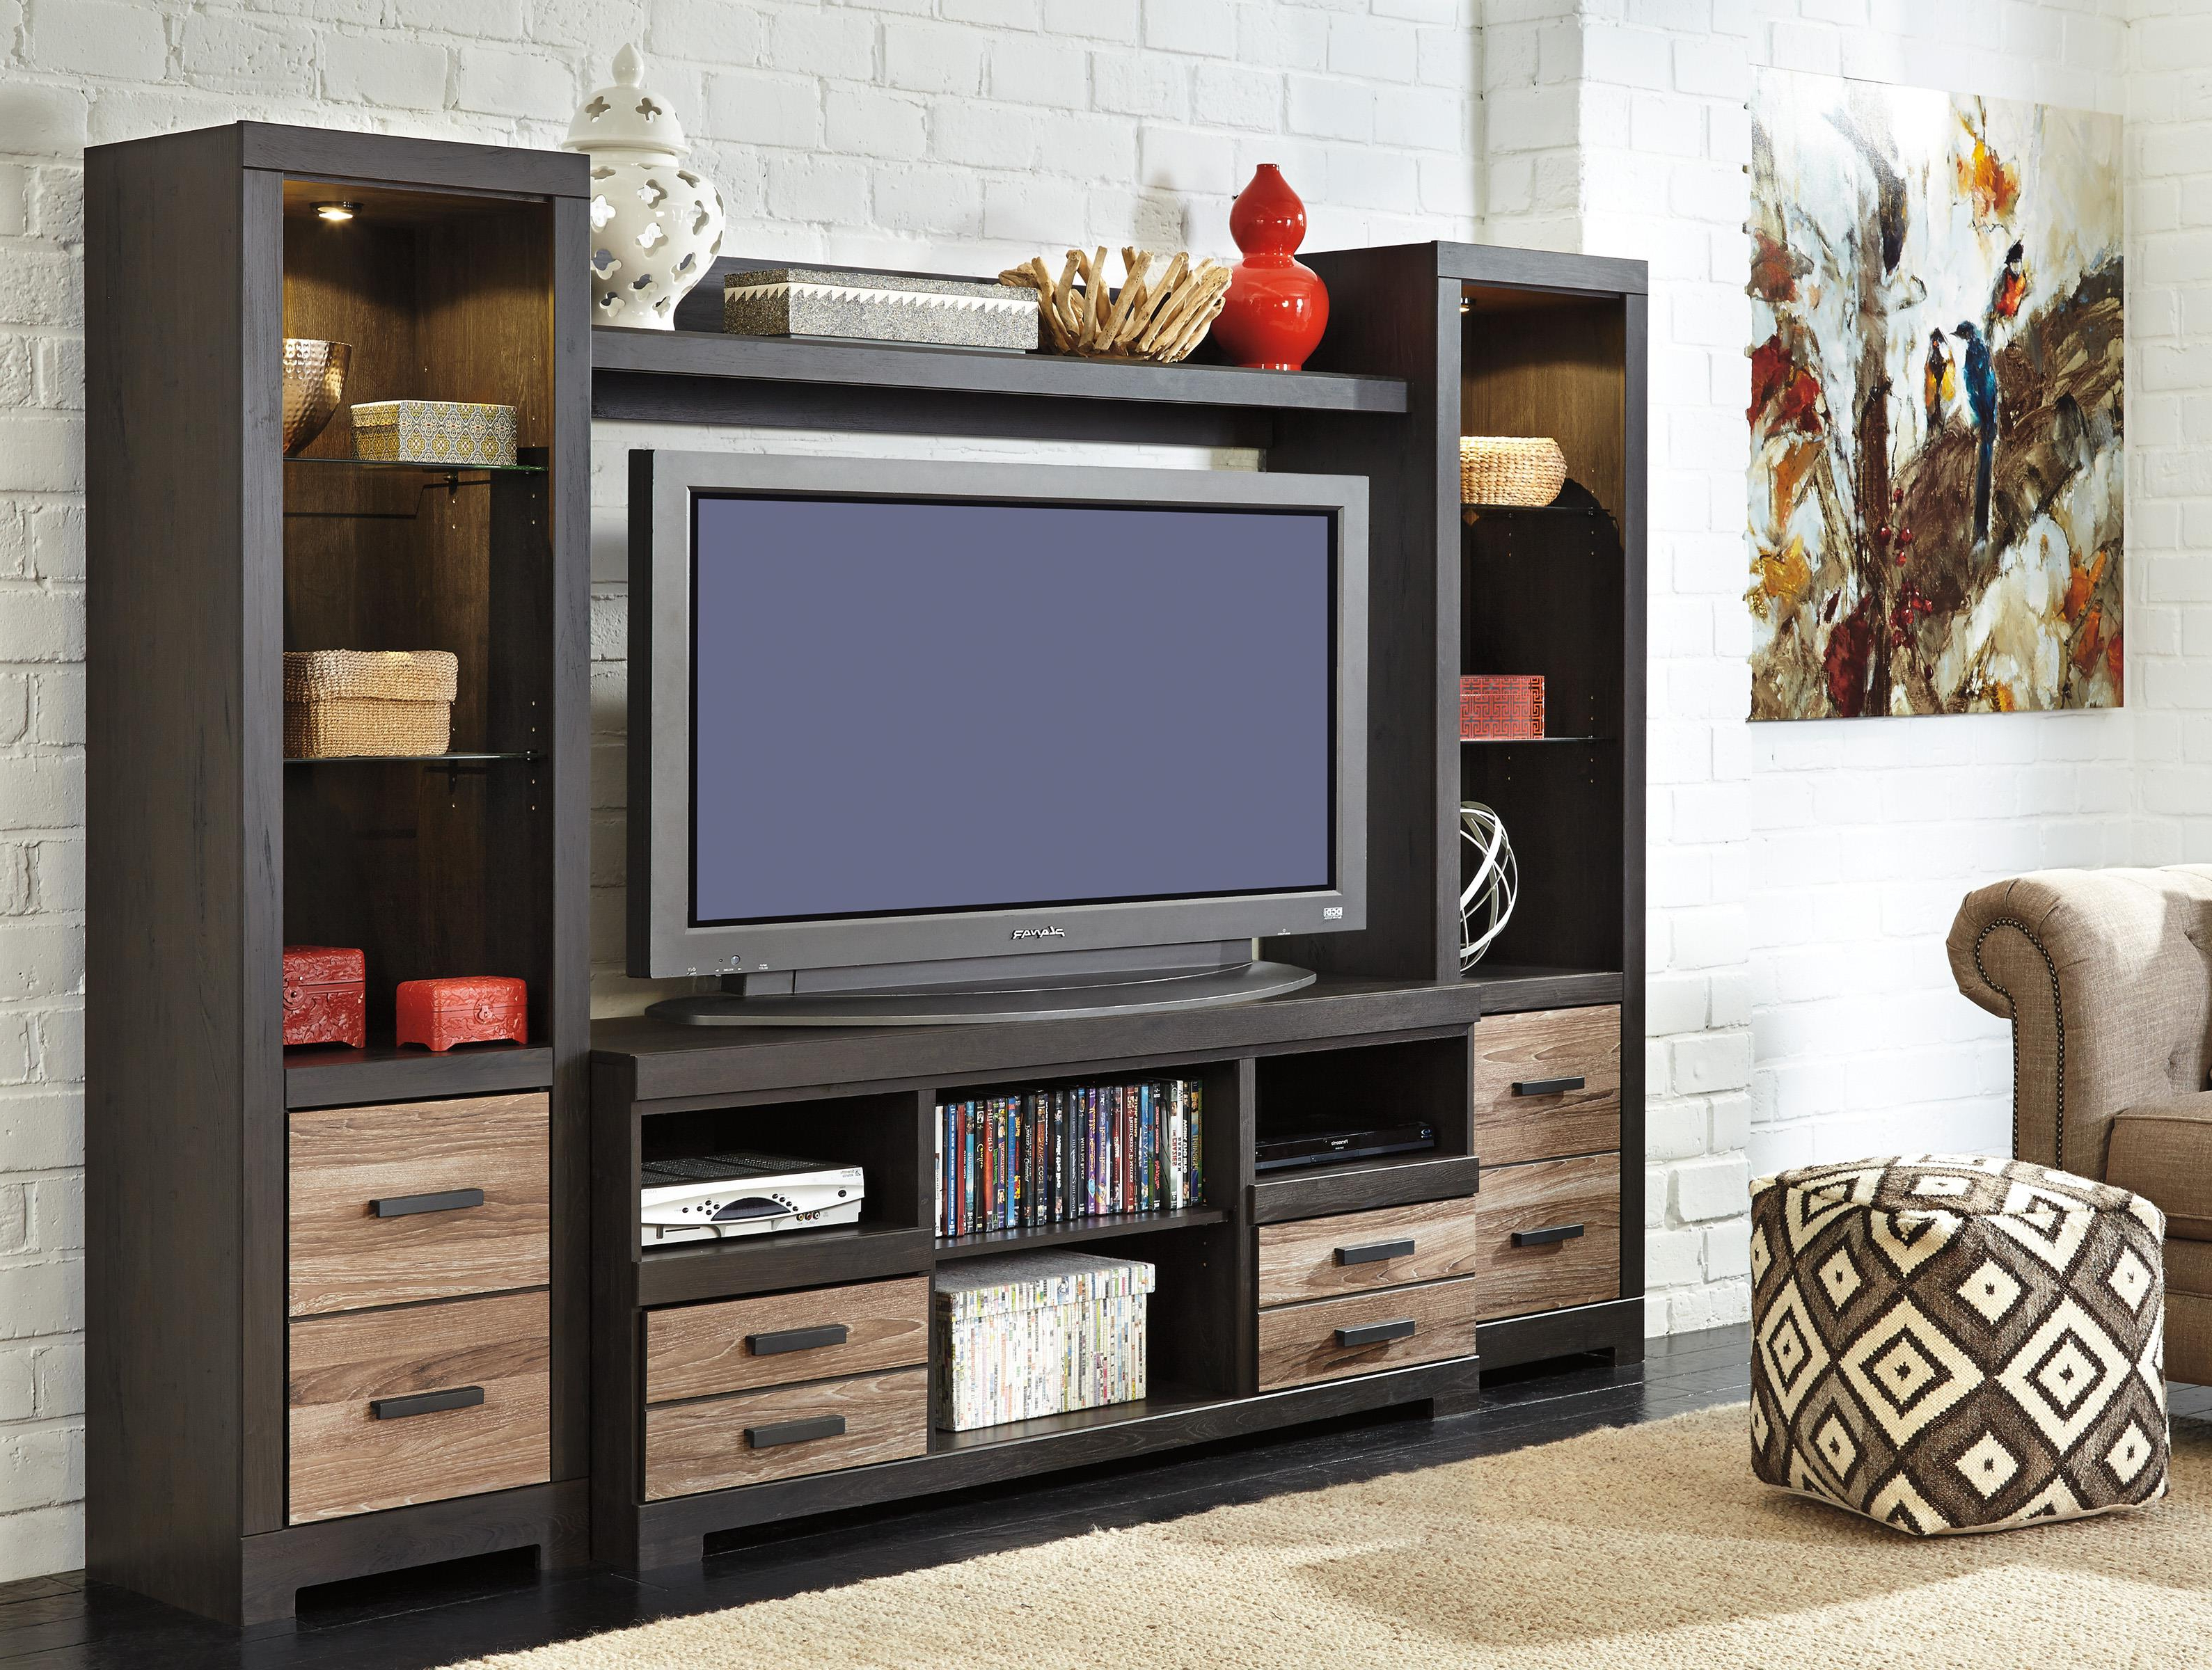 Large Tv Cabinets Regarding Most Popular Large Tv Stand Large Tv Cabinets Tv Cabinet Glass Display Cabinet (View 10 of 20)